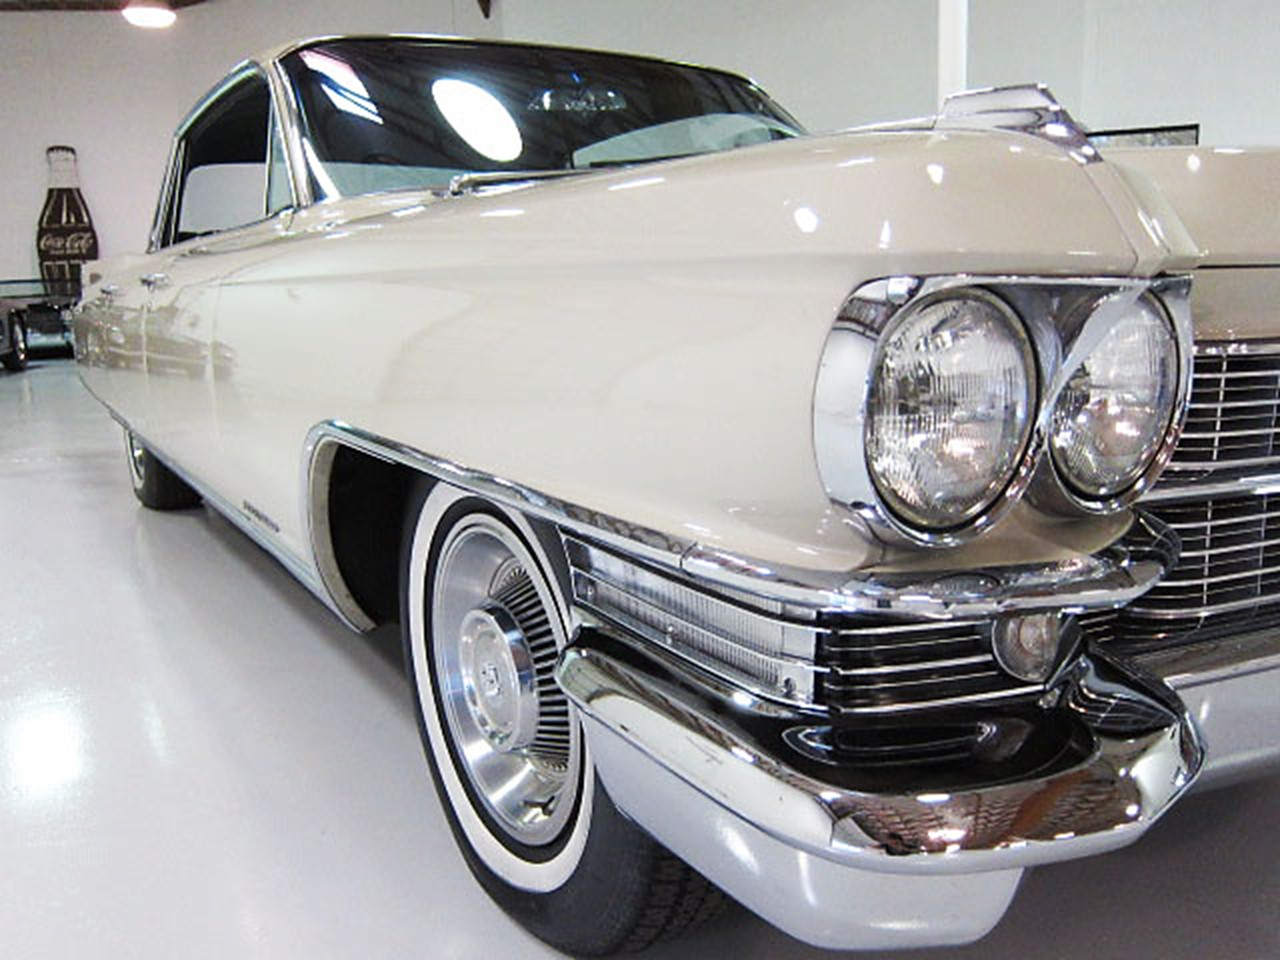 1963 Cadillac Fleetwood Series Sixty-Special | NotoriousLuxury